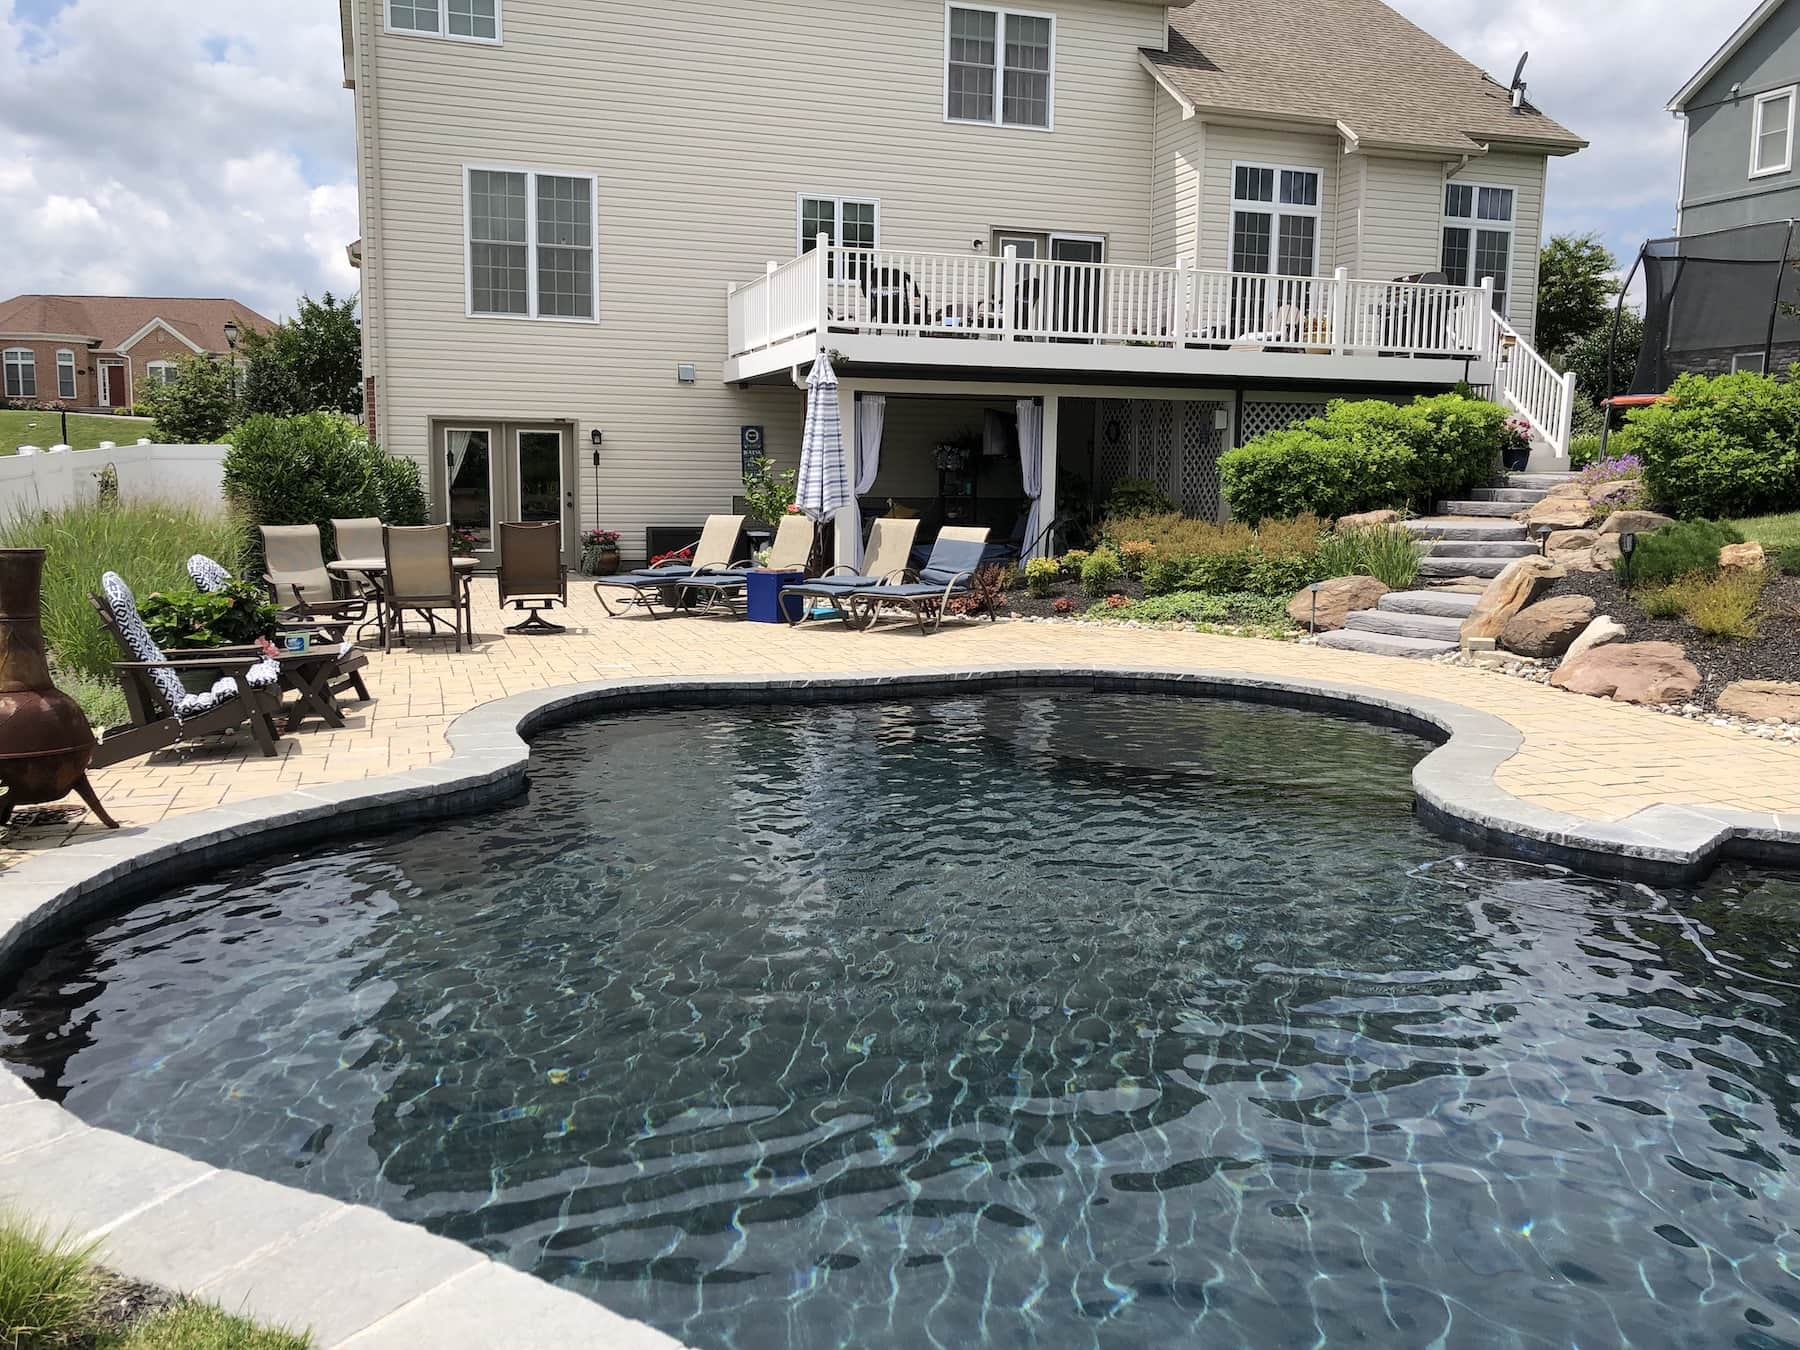 Freeform Pool & Paver Deck Middletown MD